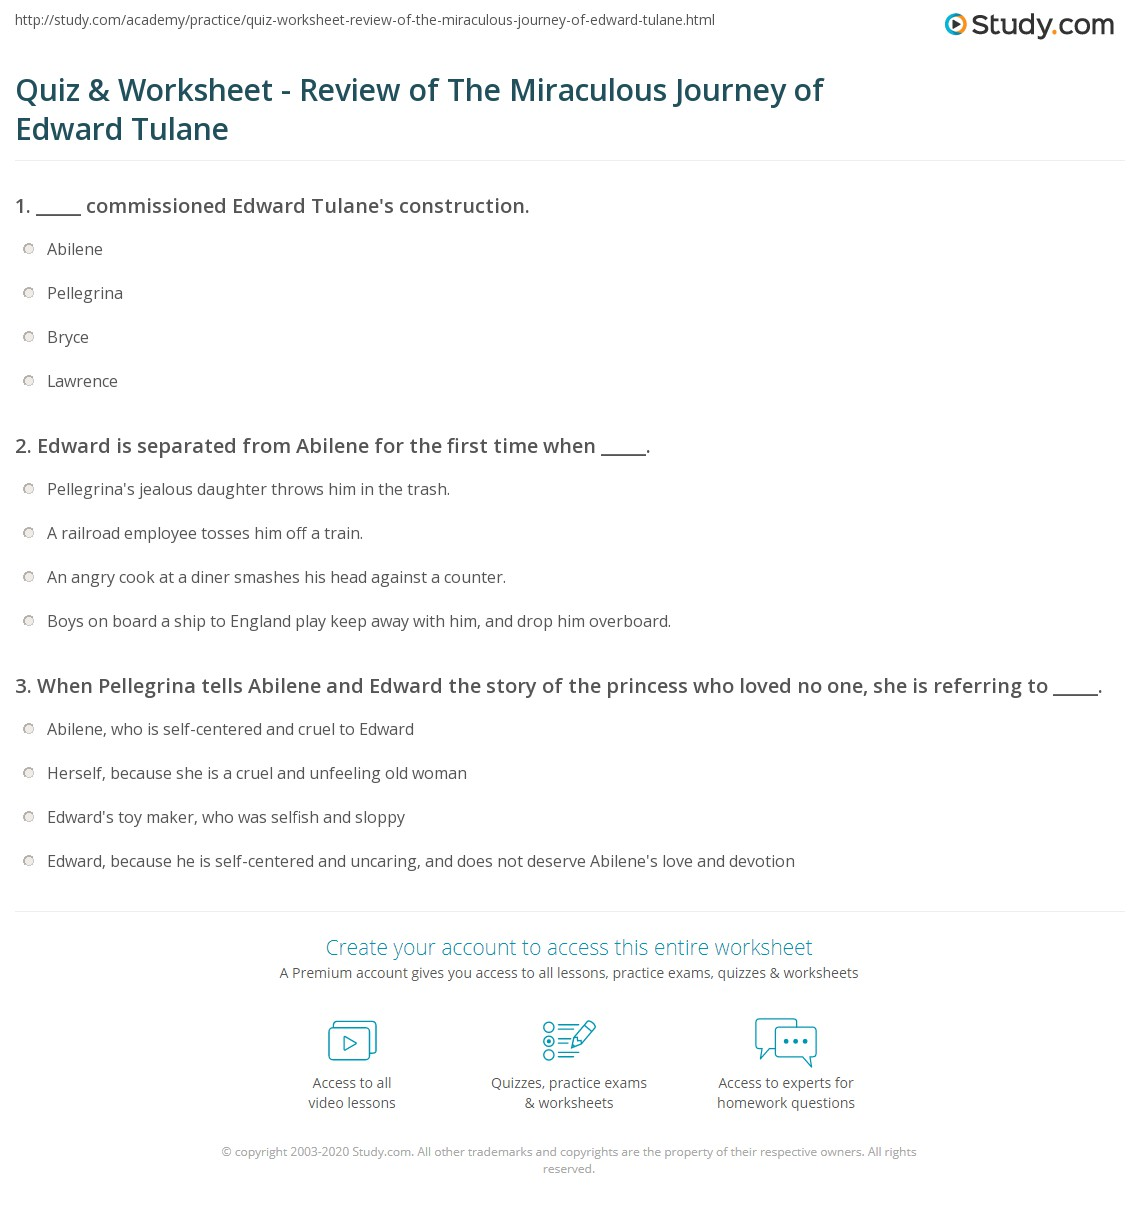 Print The Miraculous Journey of Edward Tulane: Summary & Quotes Worksheet